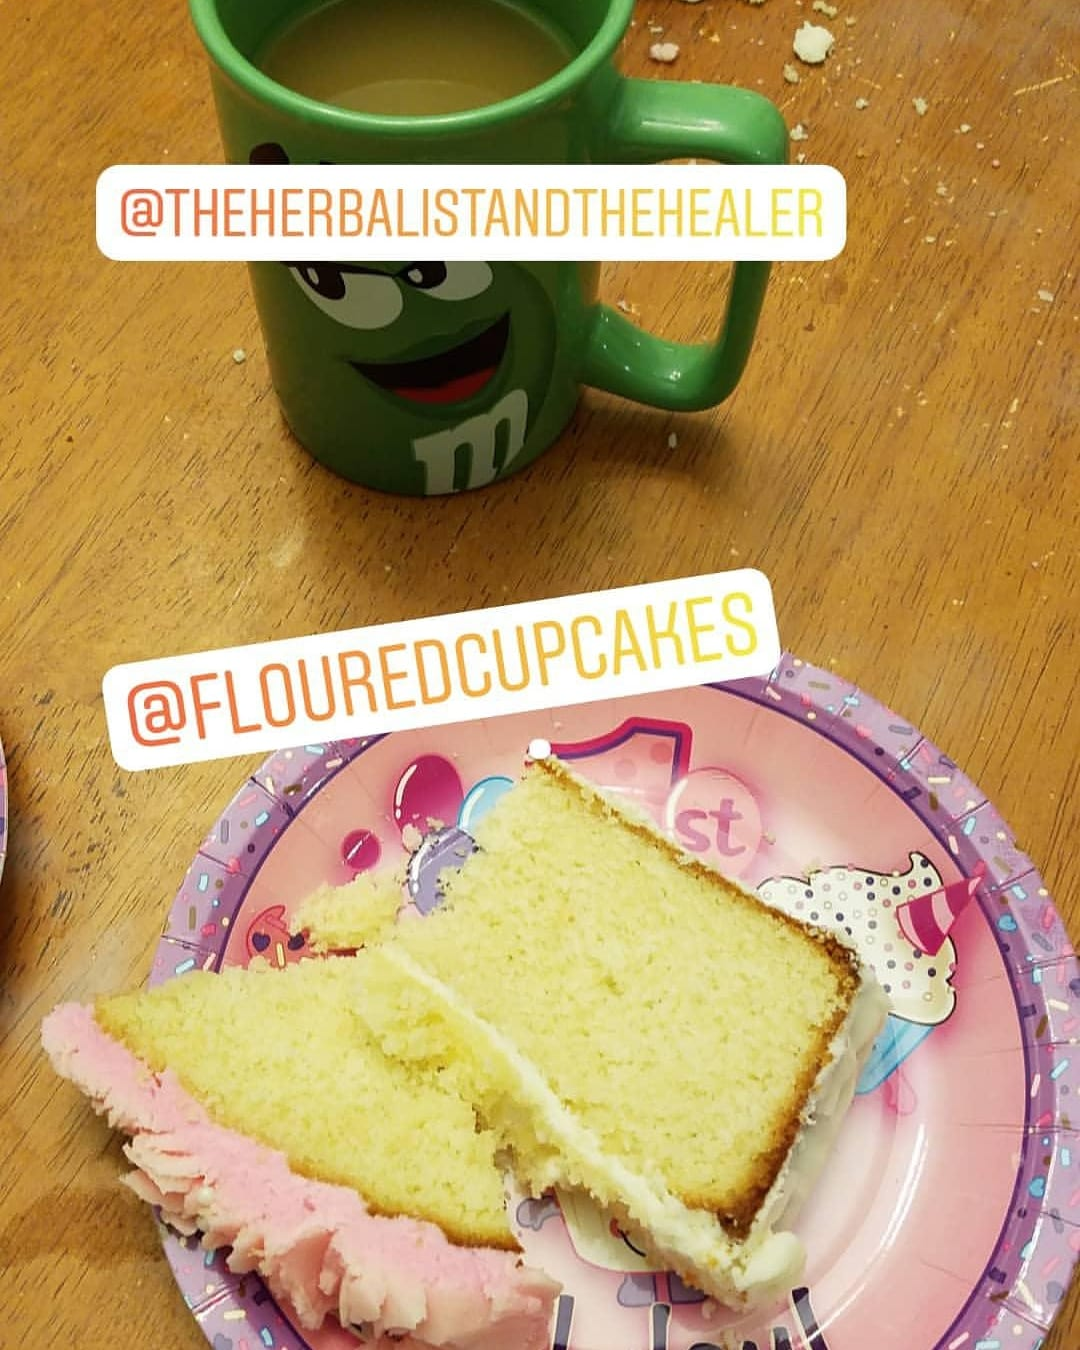 I love the after party! Chai tea from The HeErbalist and the Healer. Giant cupcake from Floured Cupcakes Tabitha Dumas